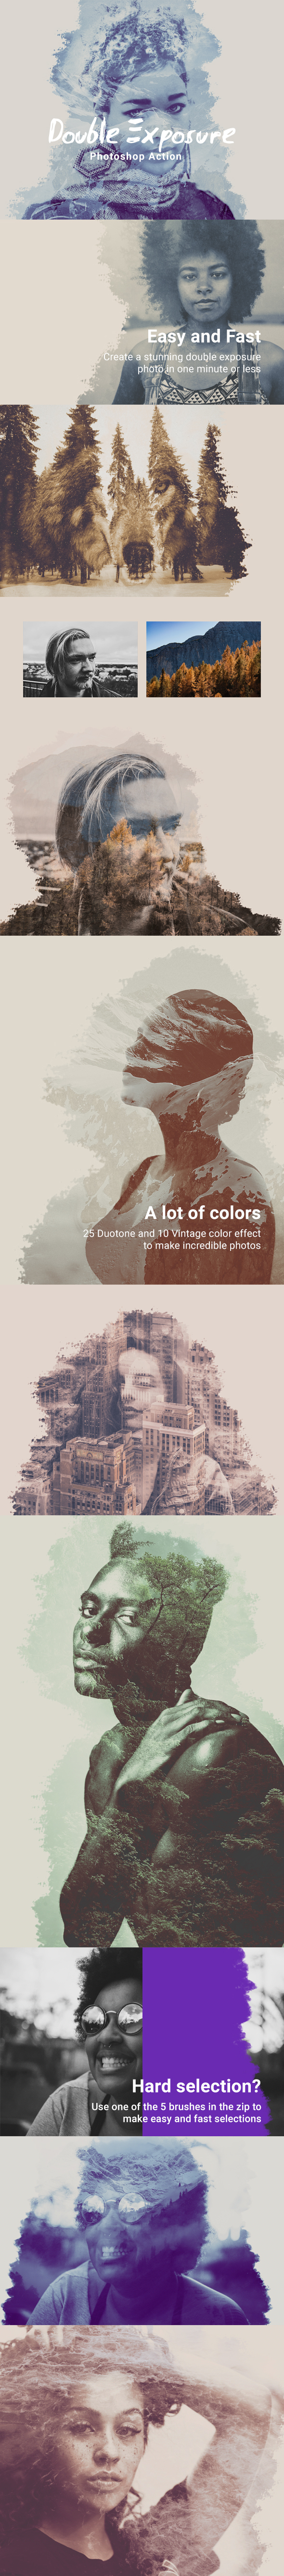 GraphicRiver Double Exposure Photoshop Action 21121015